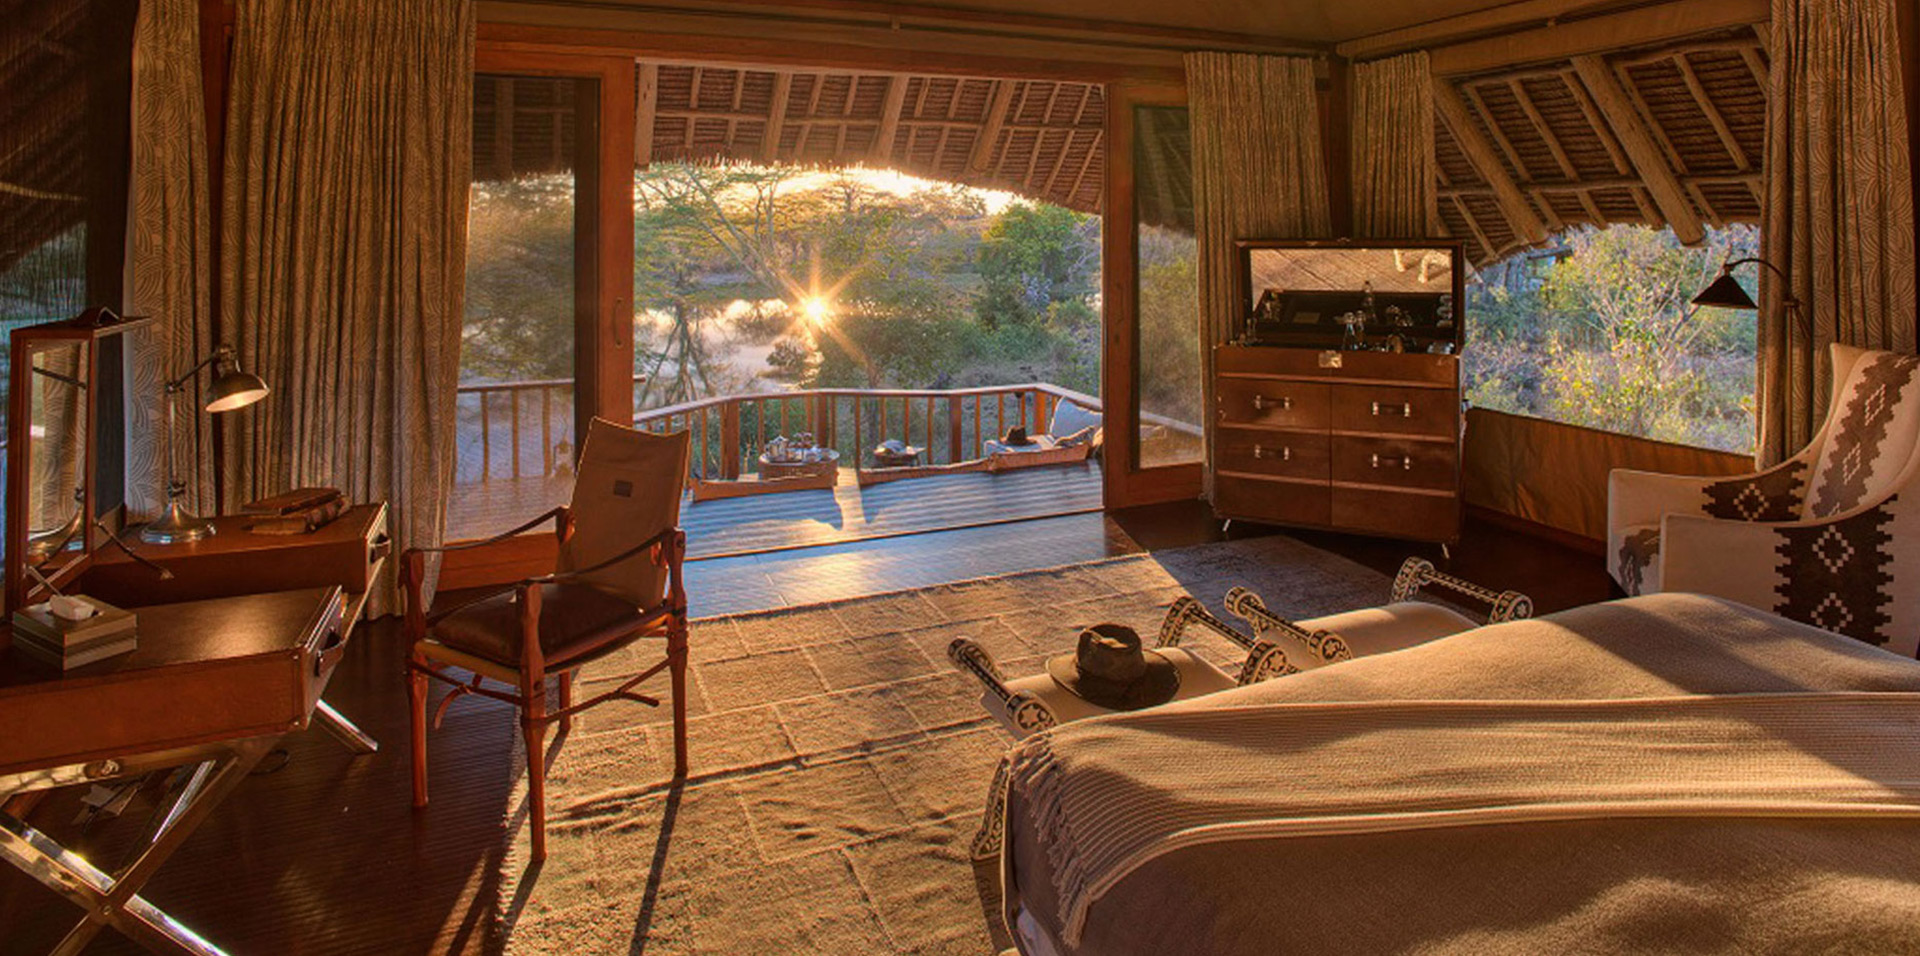 Luxury tent suite at finch hattons in Kenya, Africa